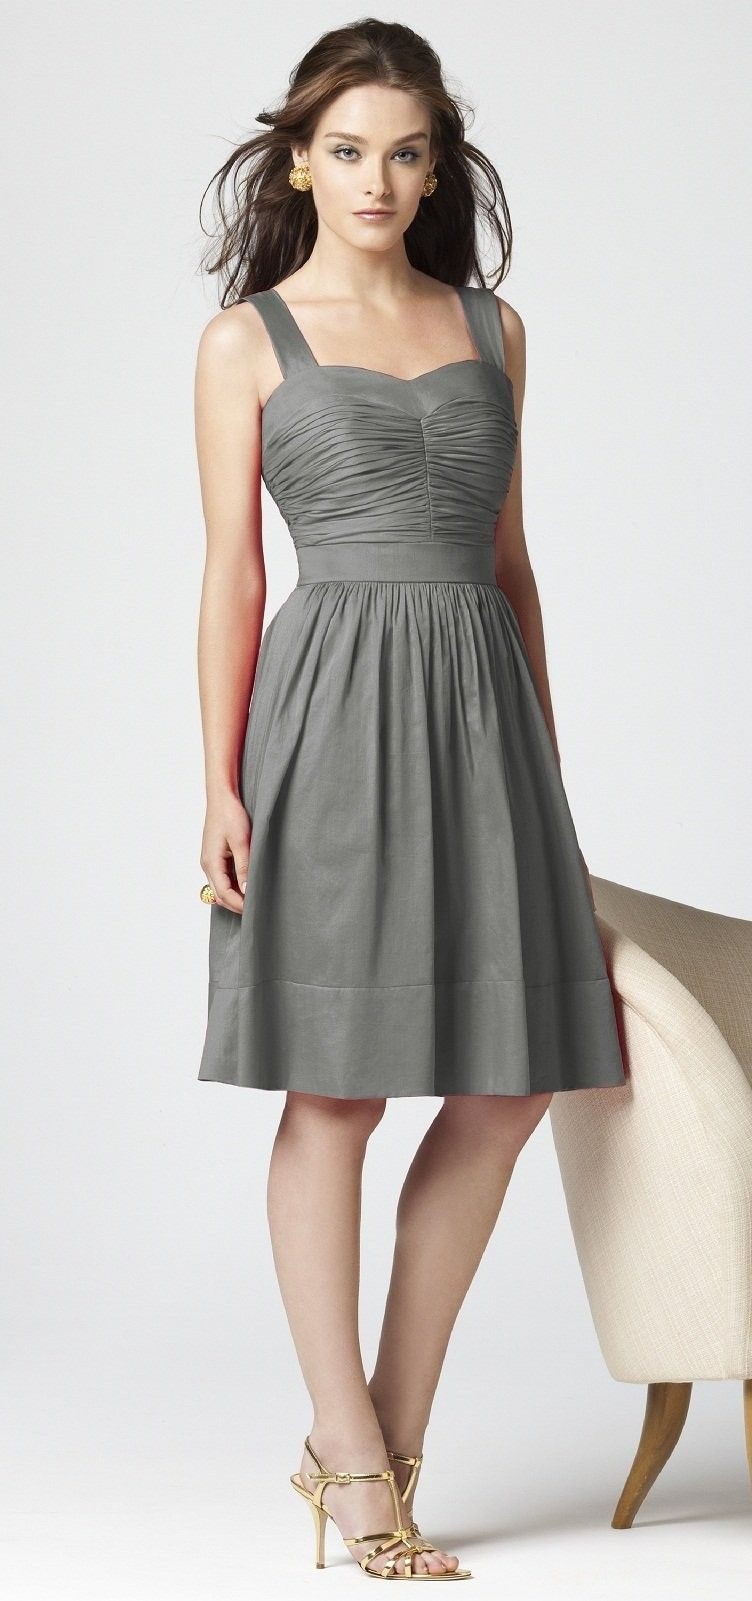 51ccc81fbf98f Bridesmaid dress option  Love the simplicity of this.